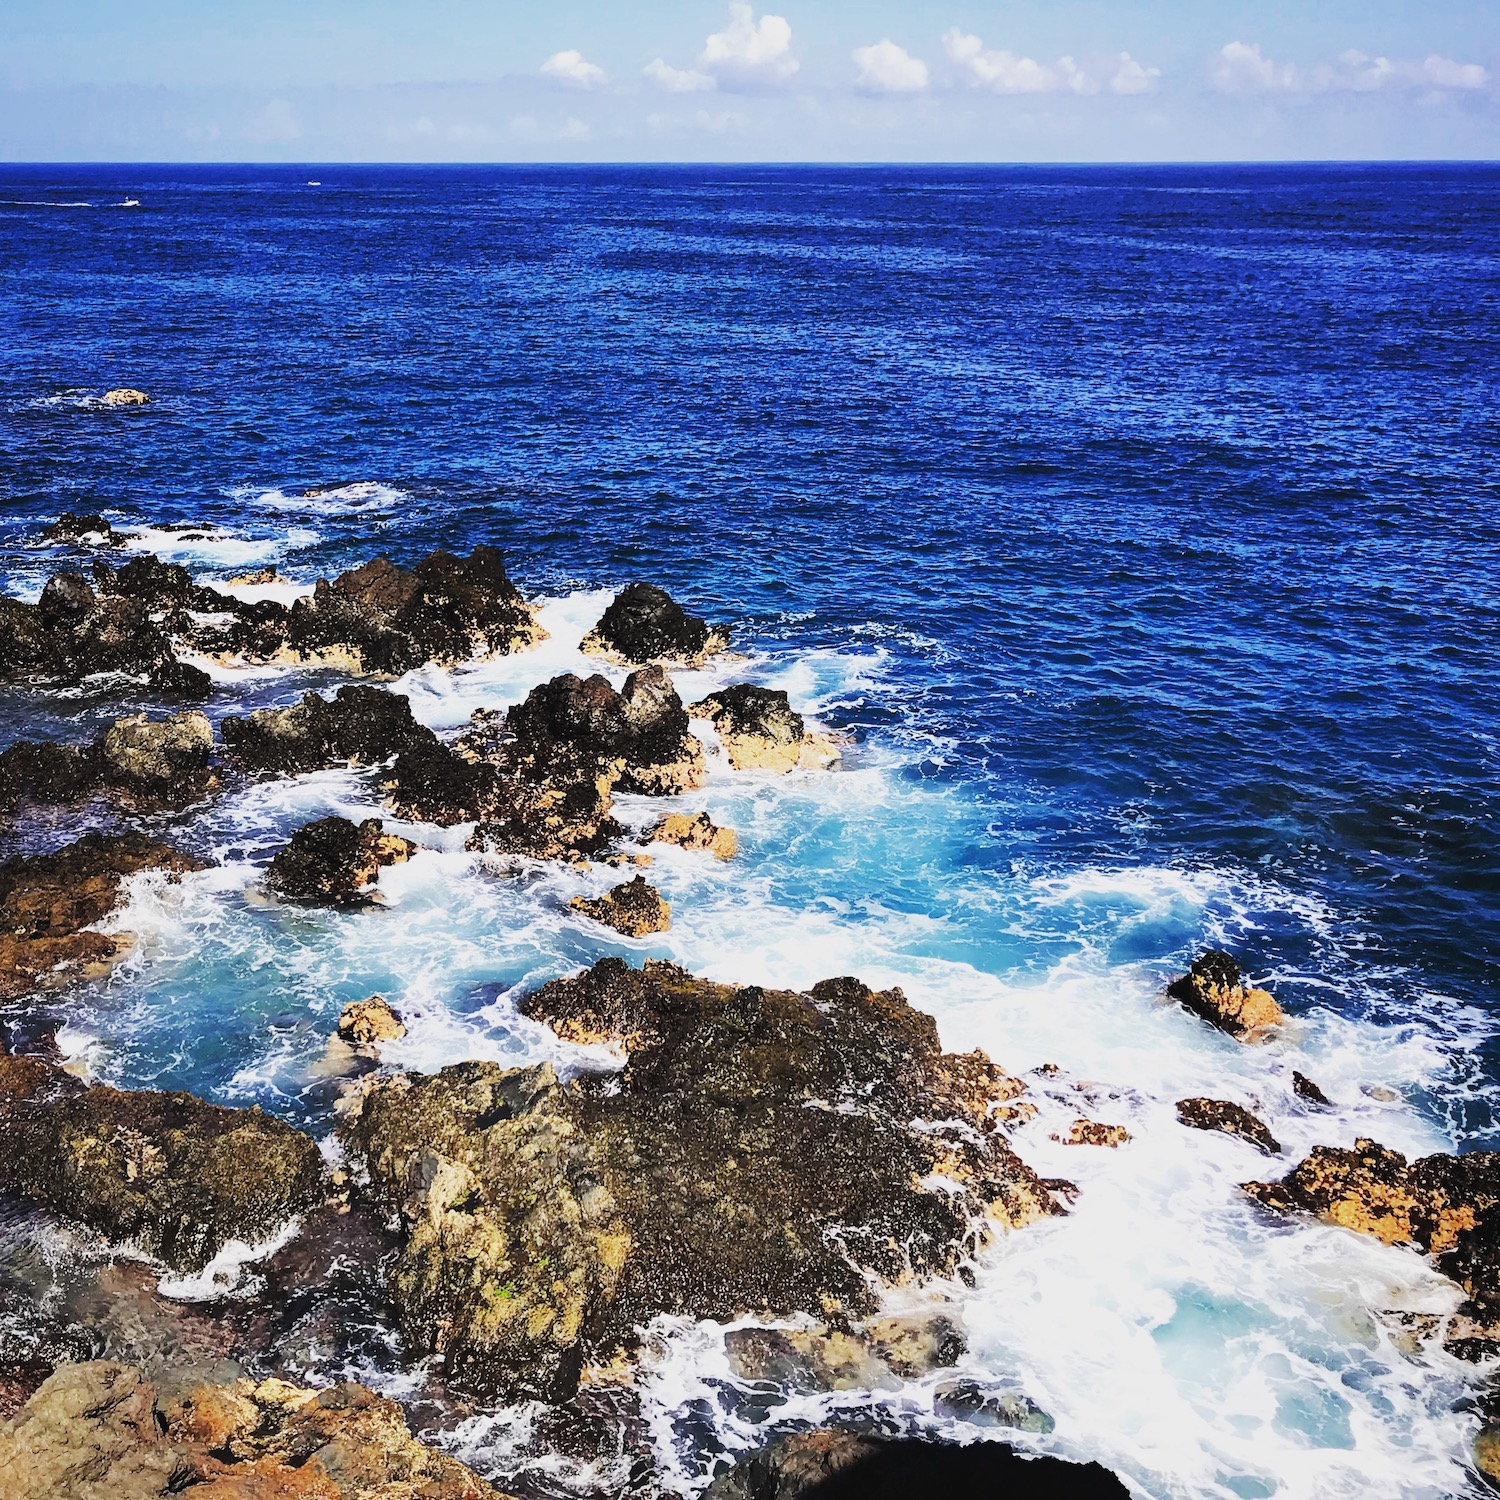 Rough surf and volcanic rock on Tenerife